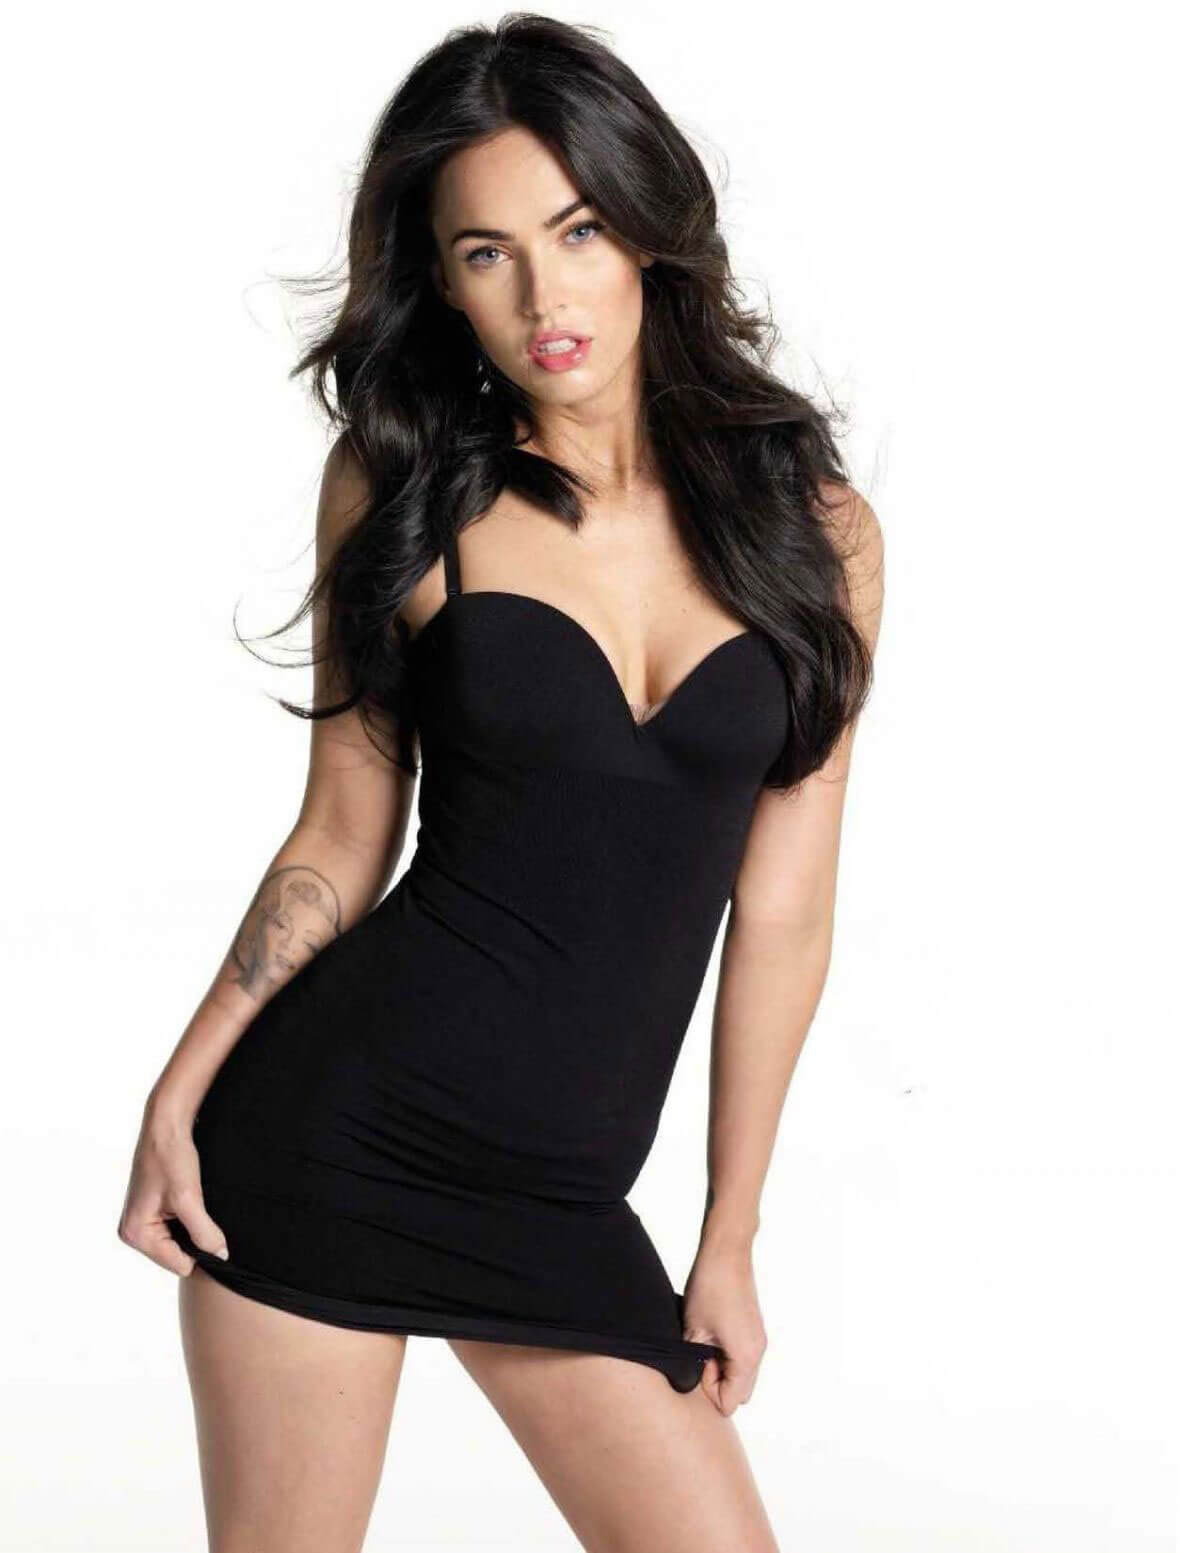 Best from the Past - Megan Fox Poses for DT Magazine, 2009 Issue 1